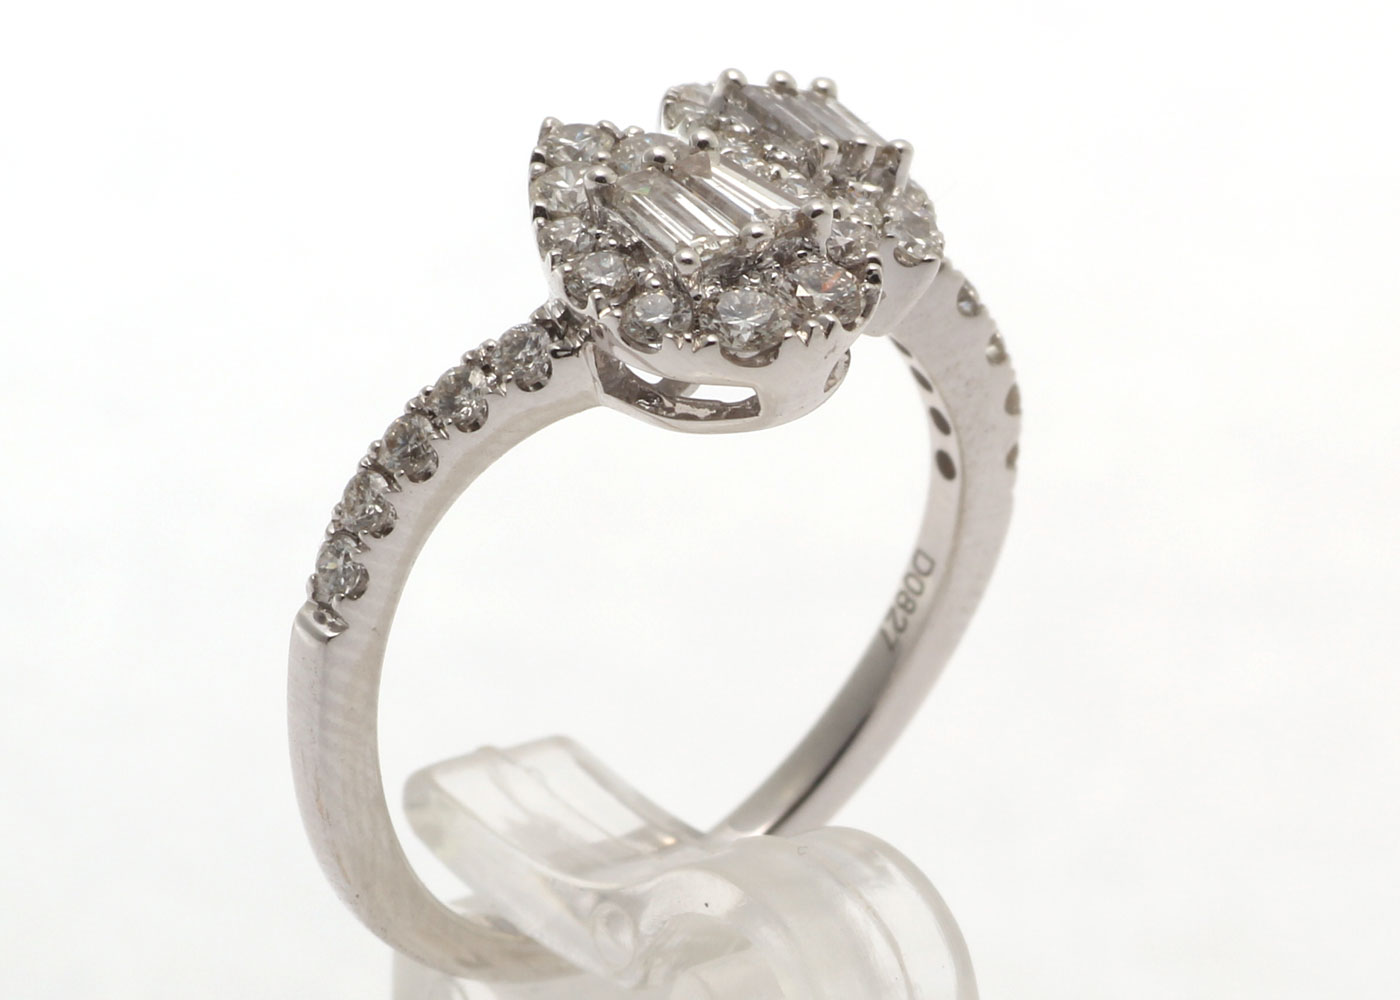 18k White Gold Double Pear Shape Cluster Diamond Ring 0.83 Carats - Image 4 of 5